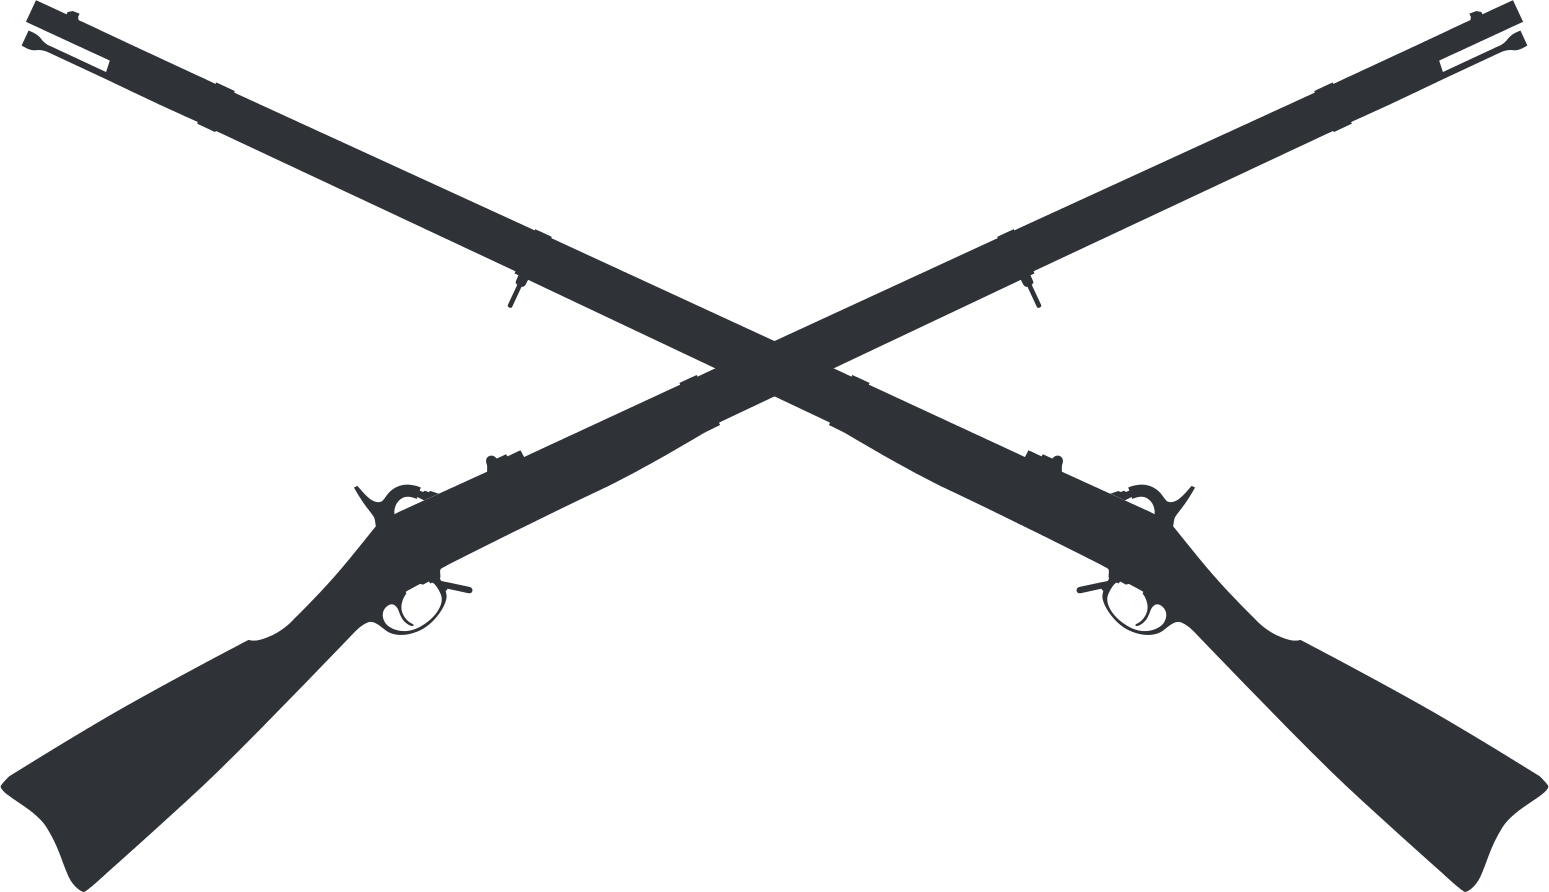 Rifle svg civil war. File springfield crossed muskets